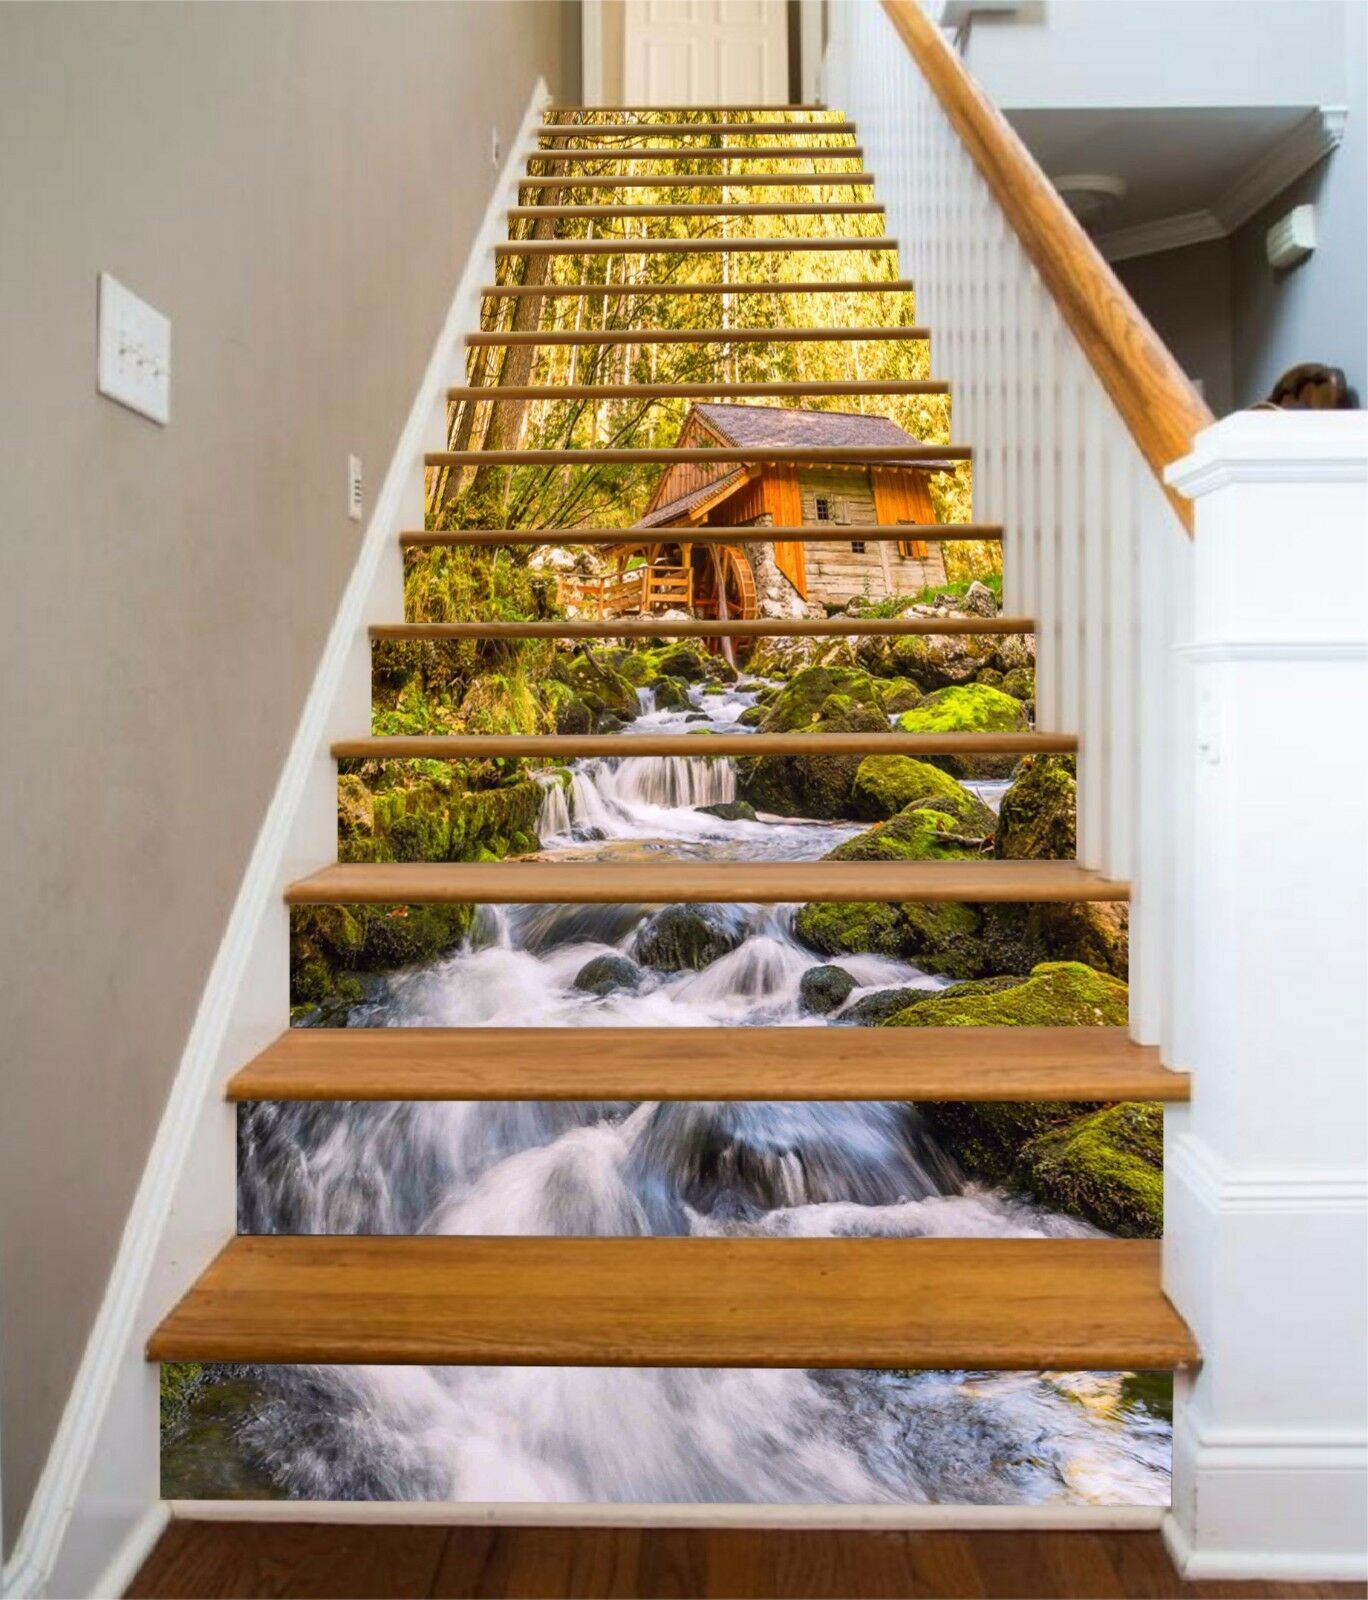 3D Forest stream 37 Stair Risers Decoration Photo Mural Vinyl Decal Wallpaper UK